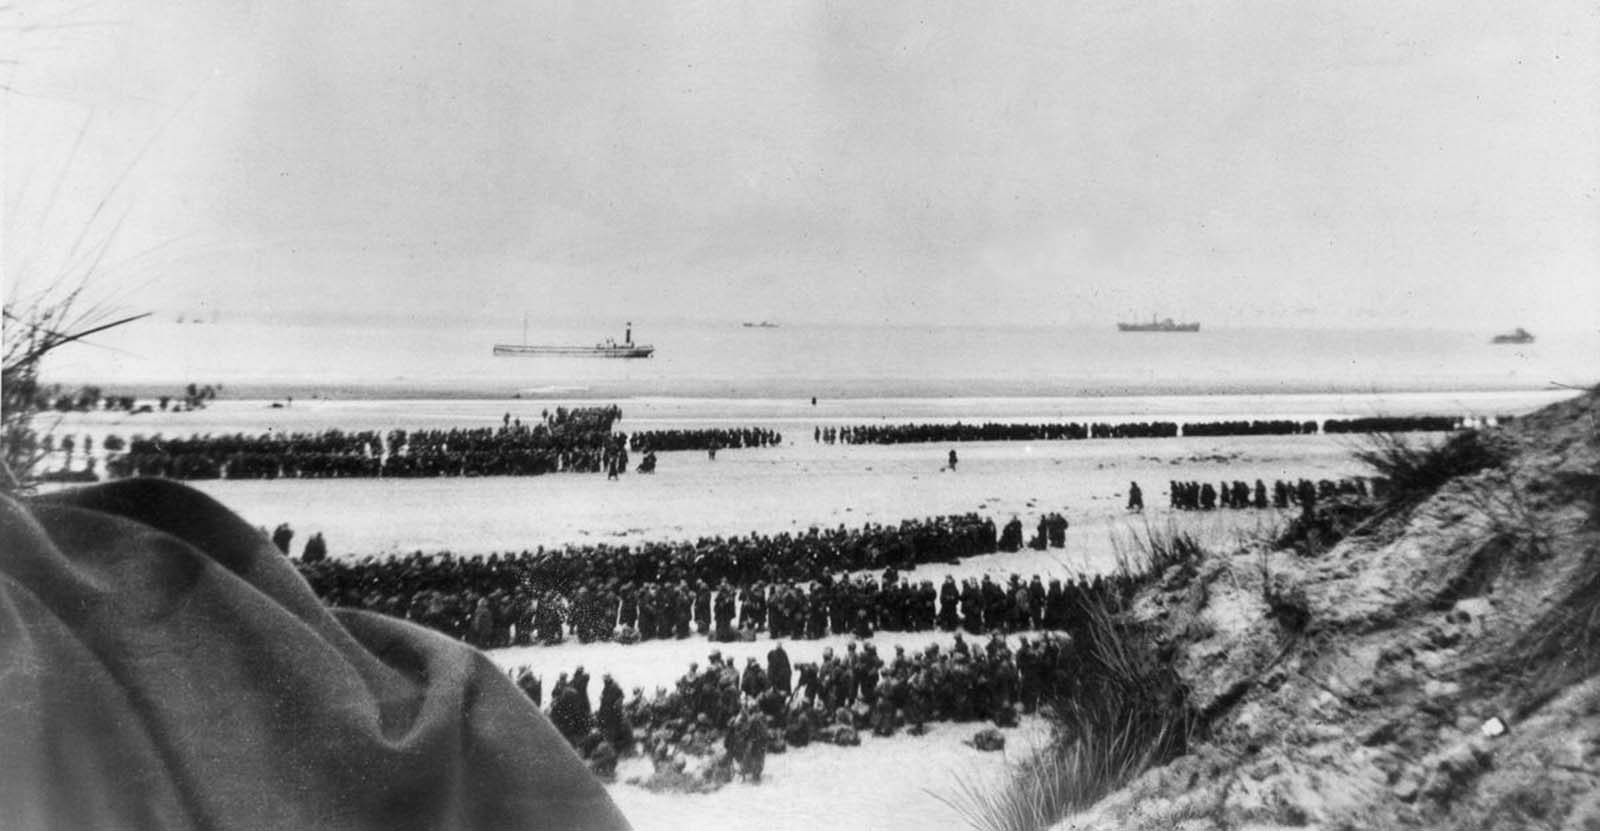 British and French troops await evacuation on the beach at Dunkirk.